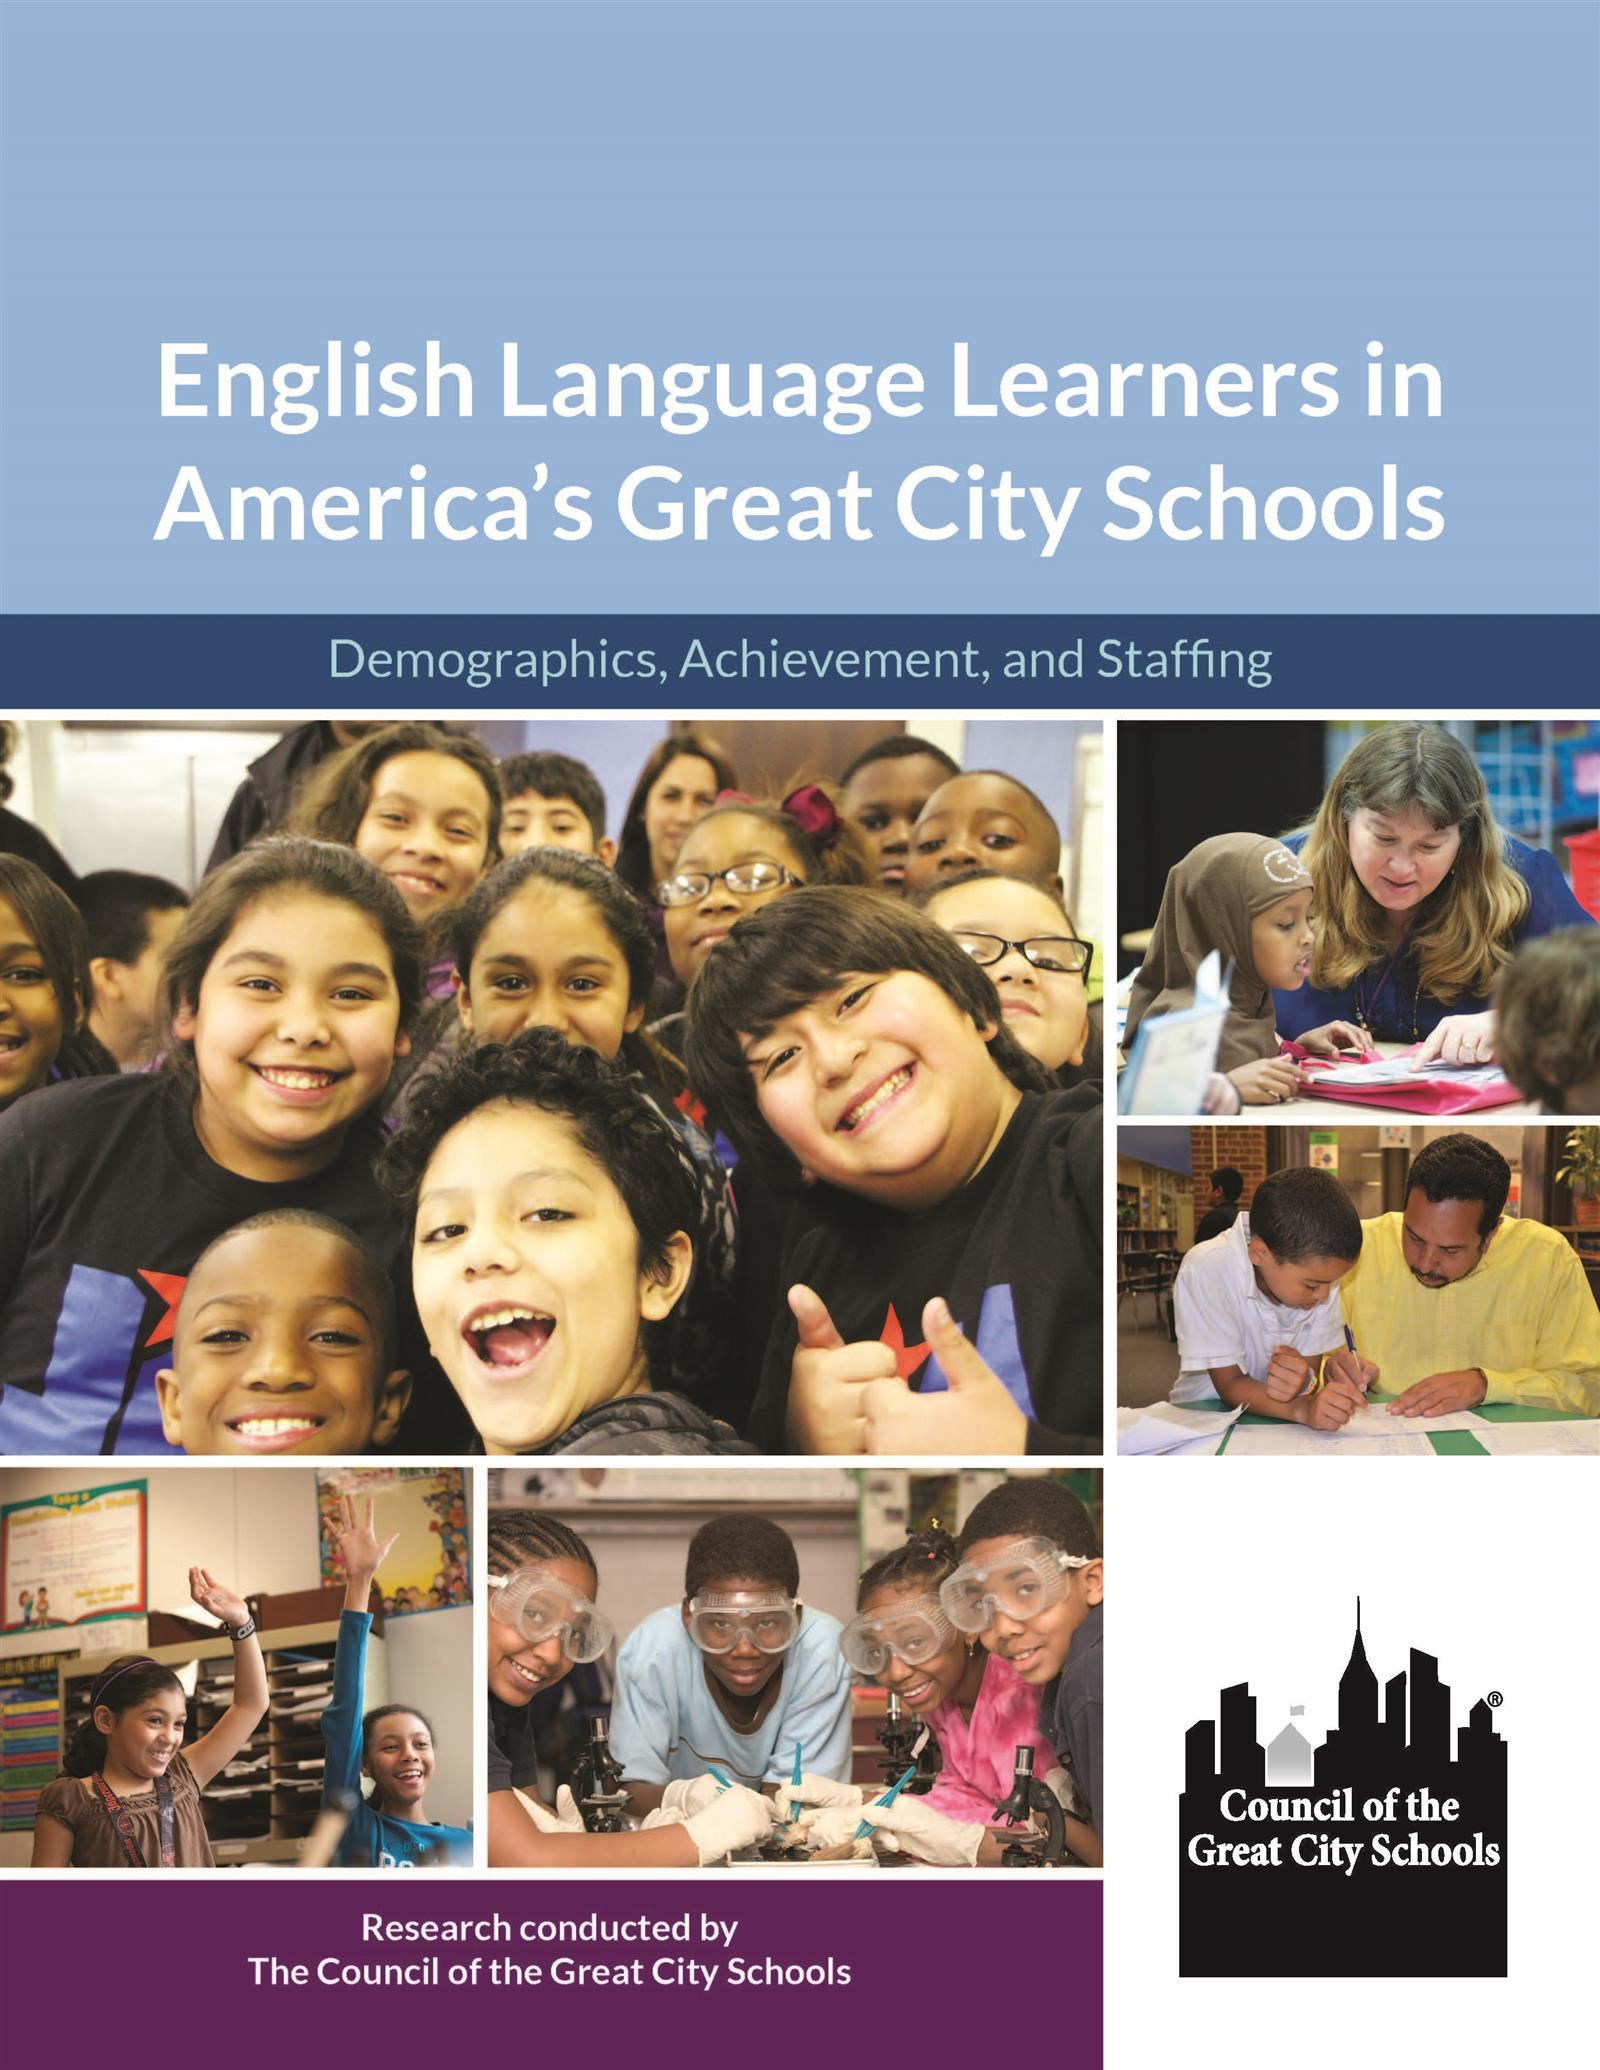 English Language Learners in America's Great City Schools